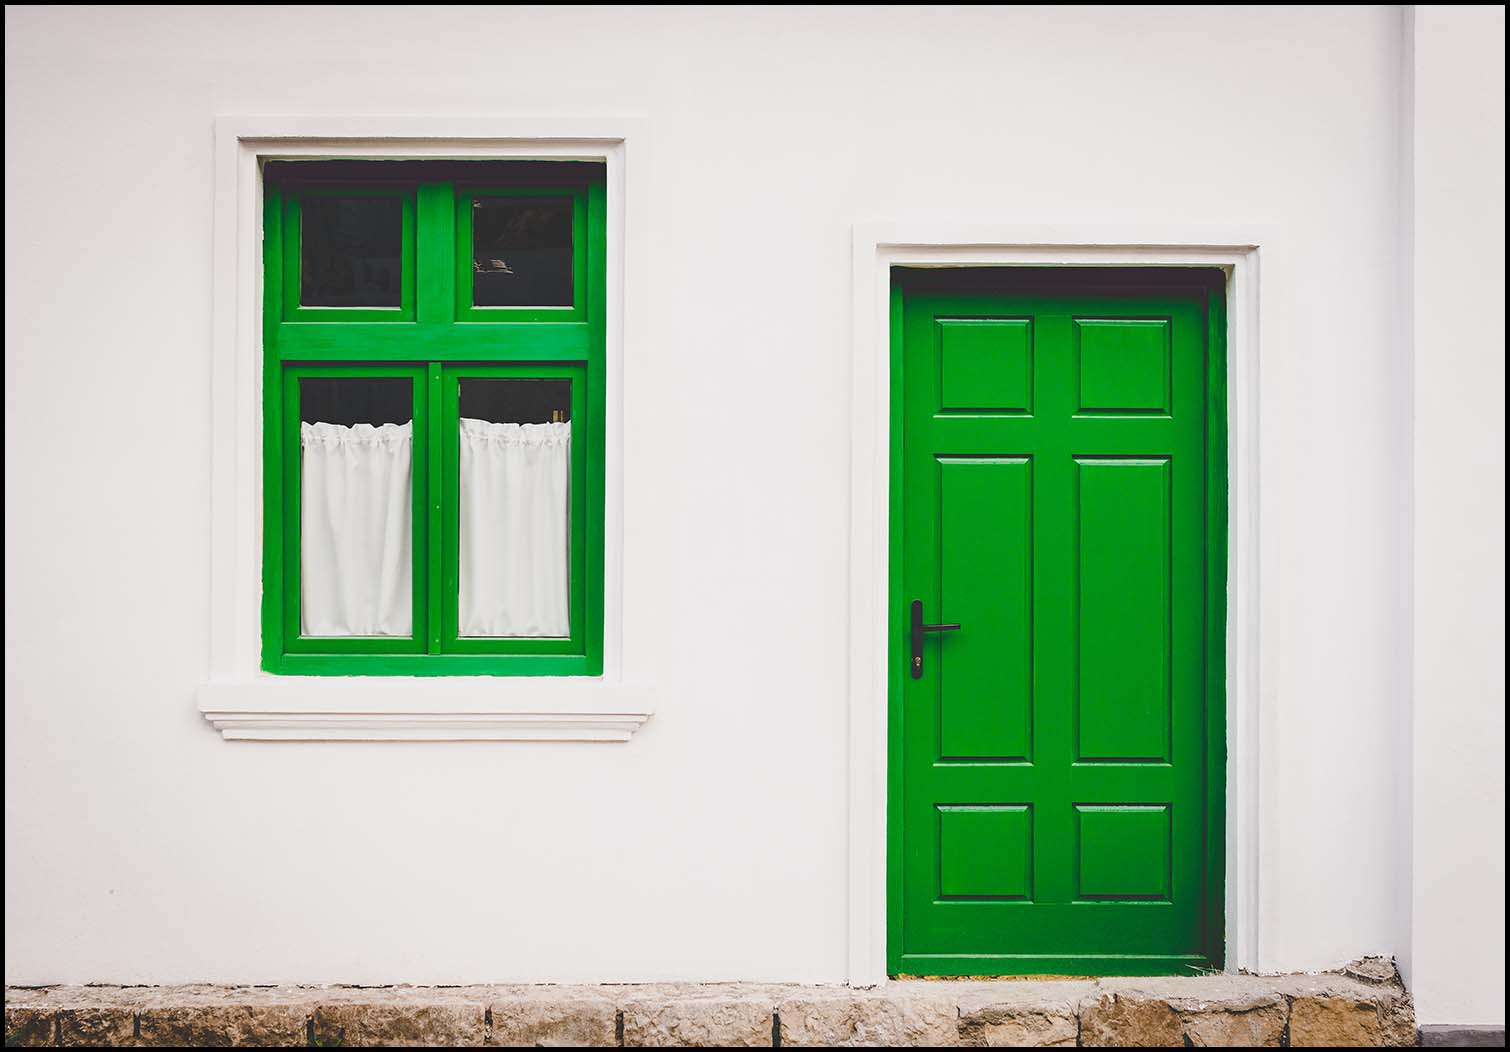 Midweek Poetry: White Walls, Green Door